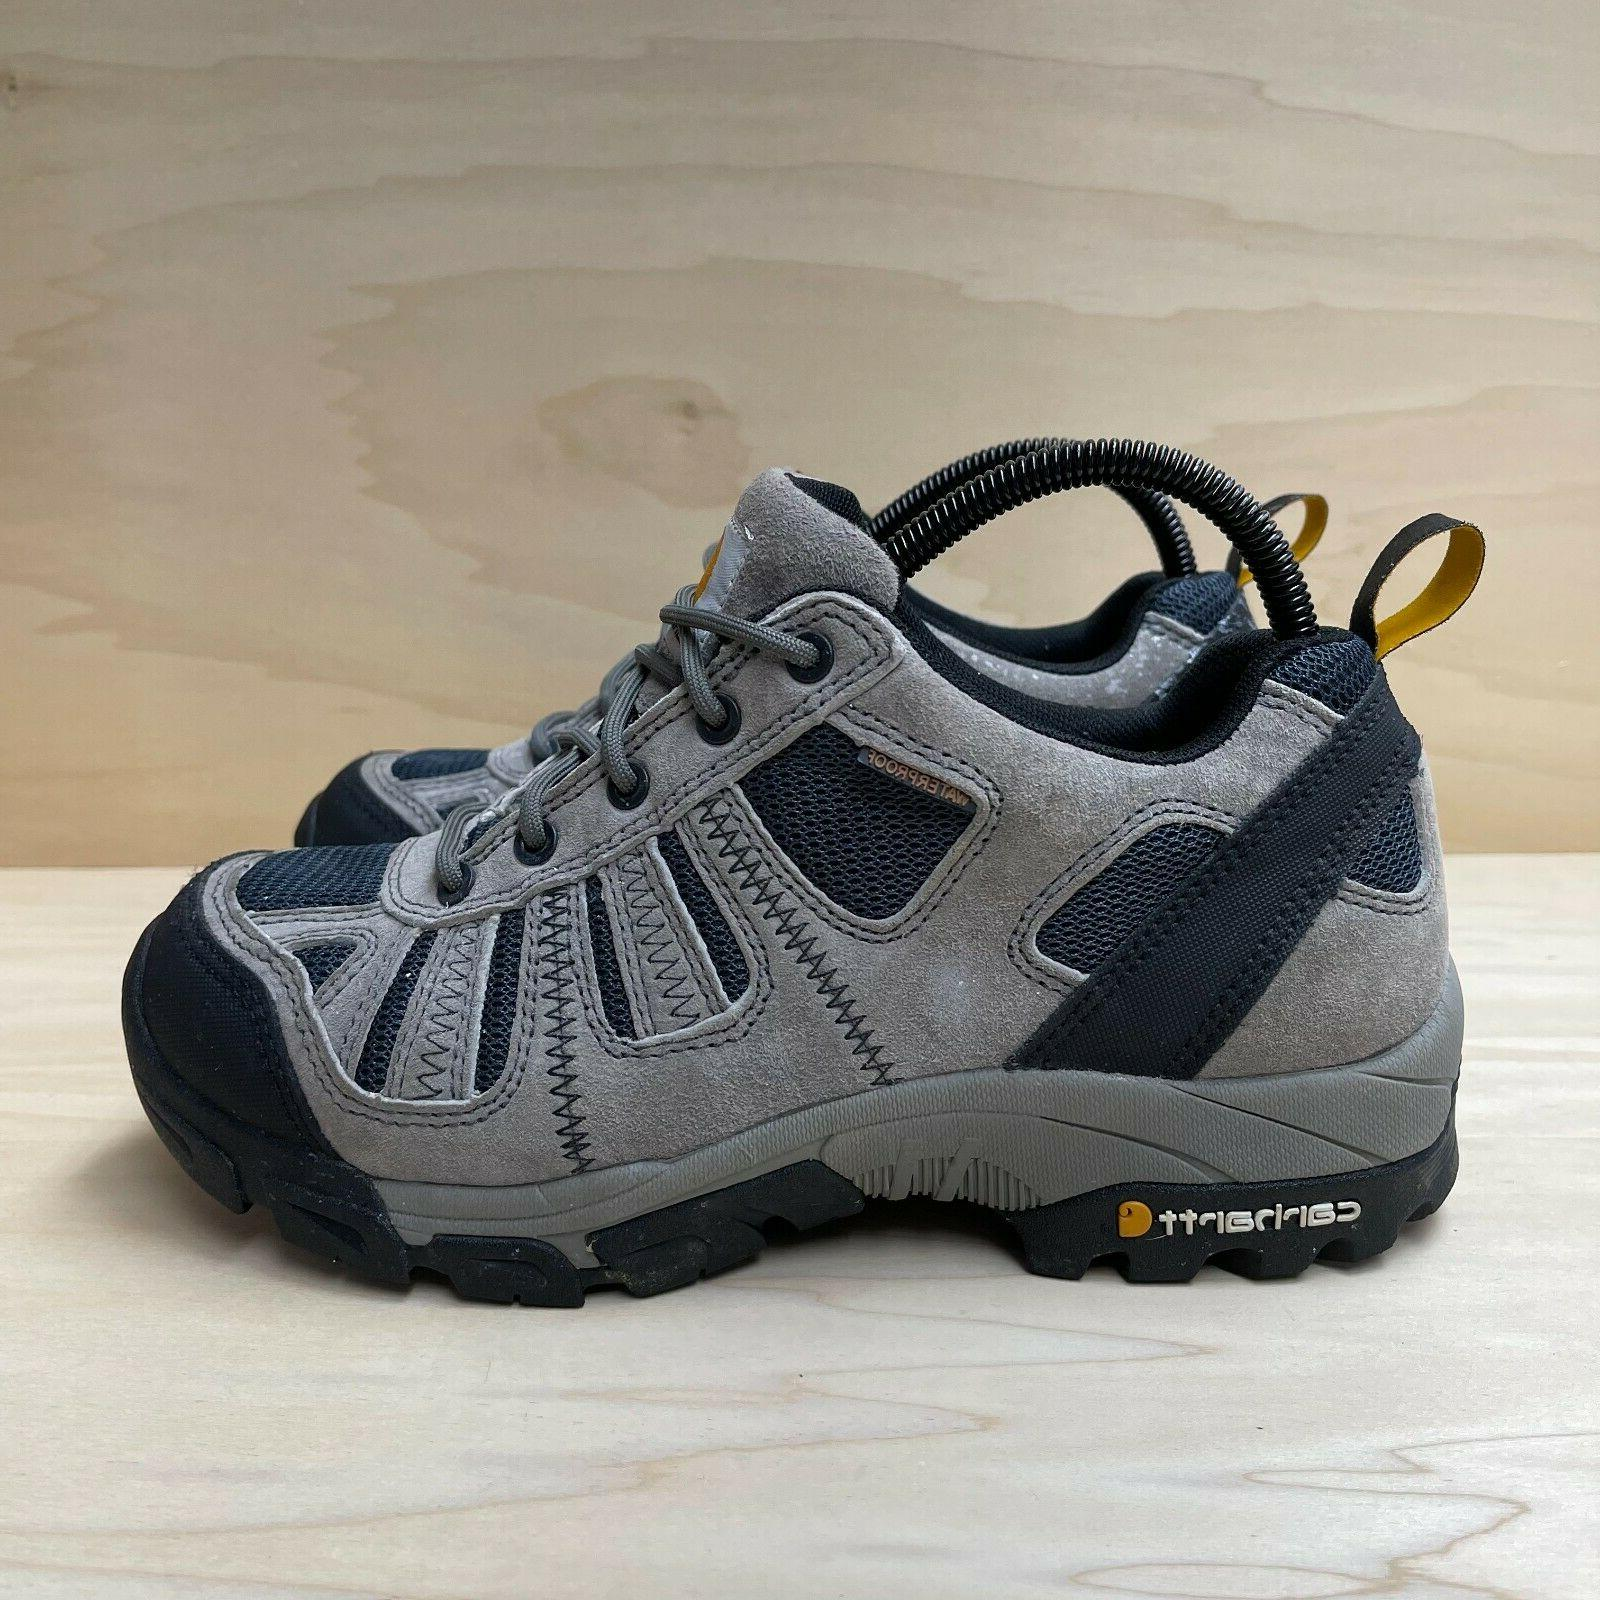 mens cm03156 waterproof lace up blue gray